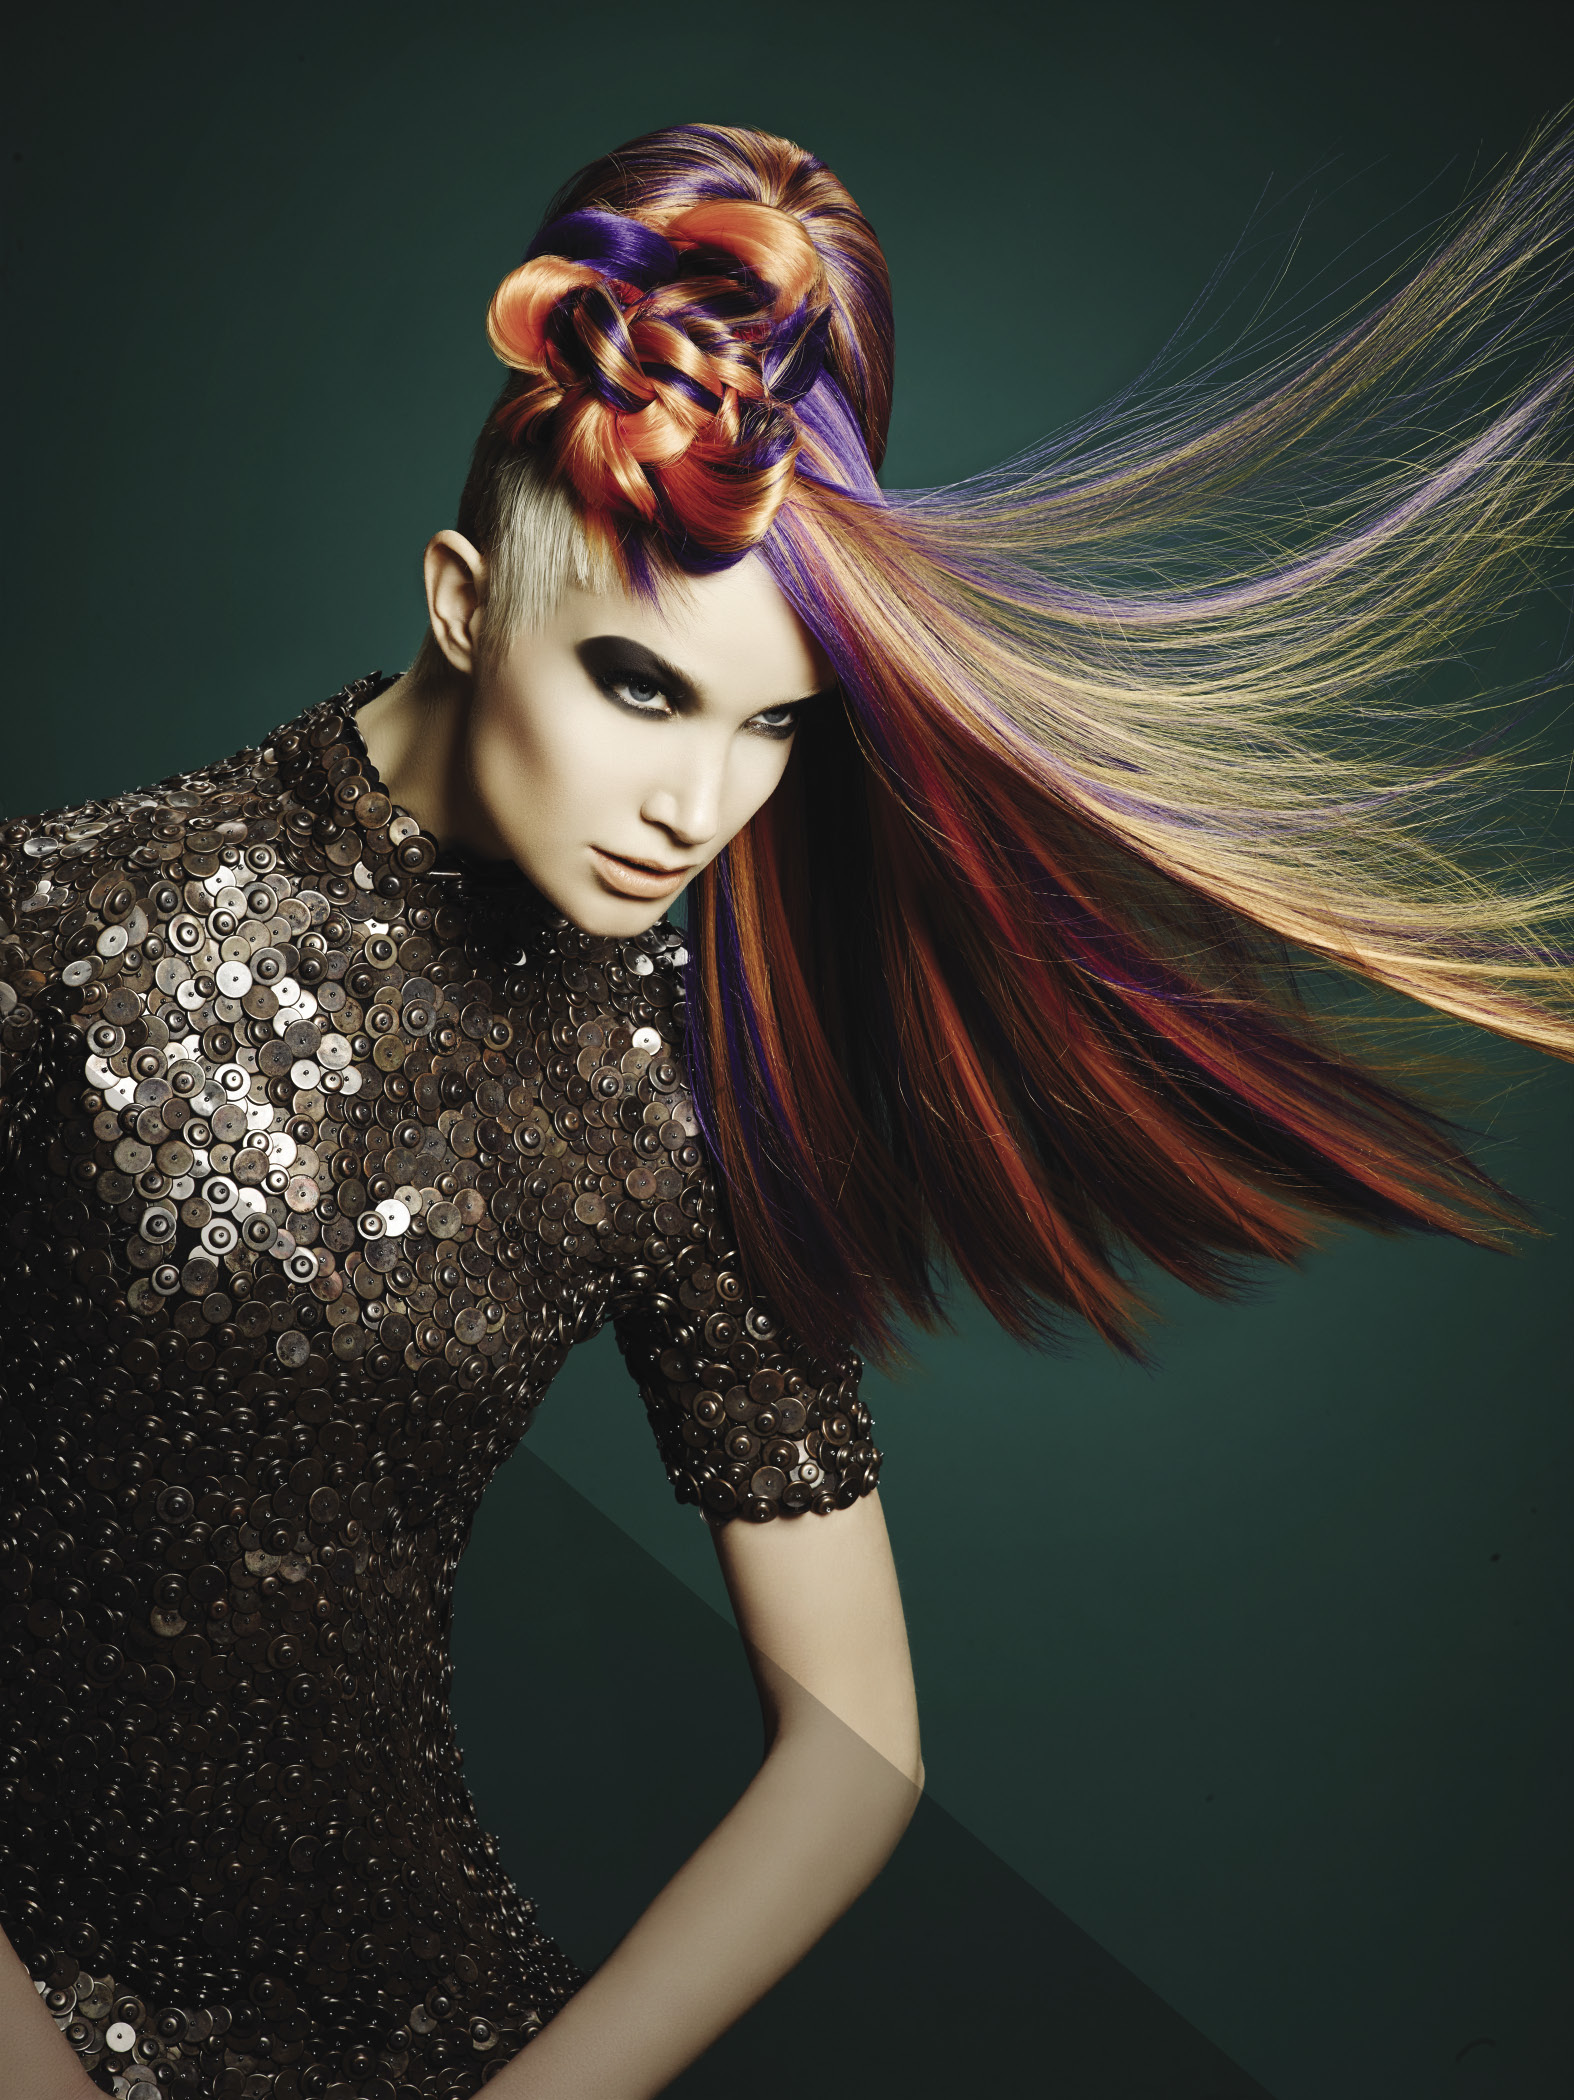 Long, luscious locks in tropical colors flow from a cropped, anti-head shape.